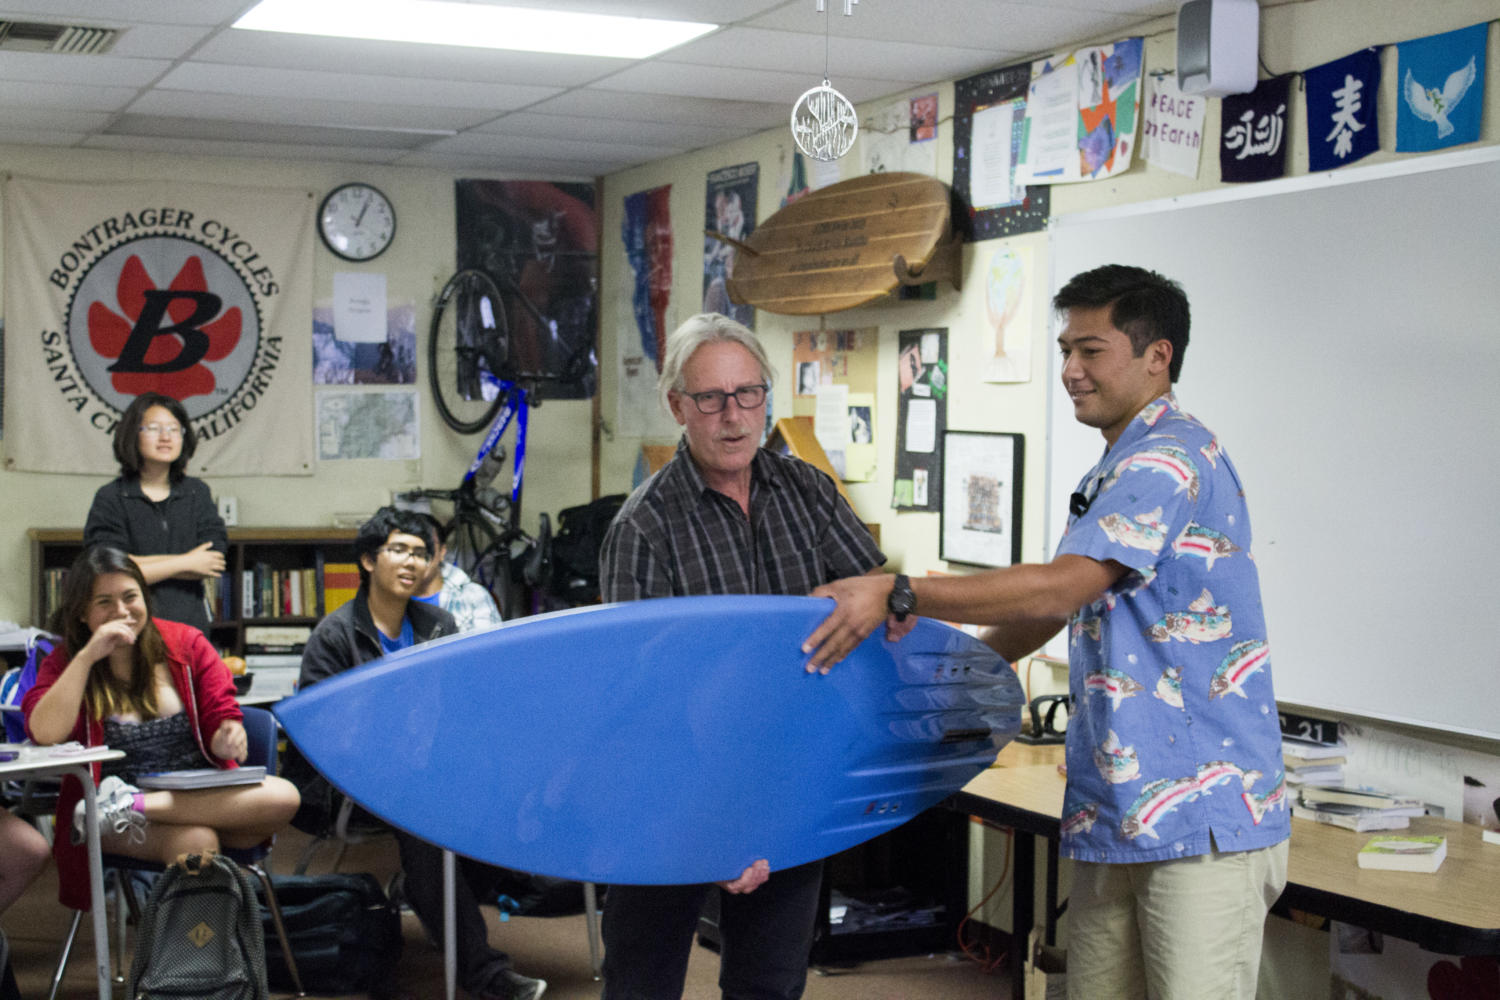 Senior Tyler Tsuji hands Mr. Kevin Buddhu his customized surfboard presented by his AP Literature classes as a goodbye gift before he leaves to Spain.